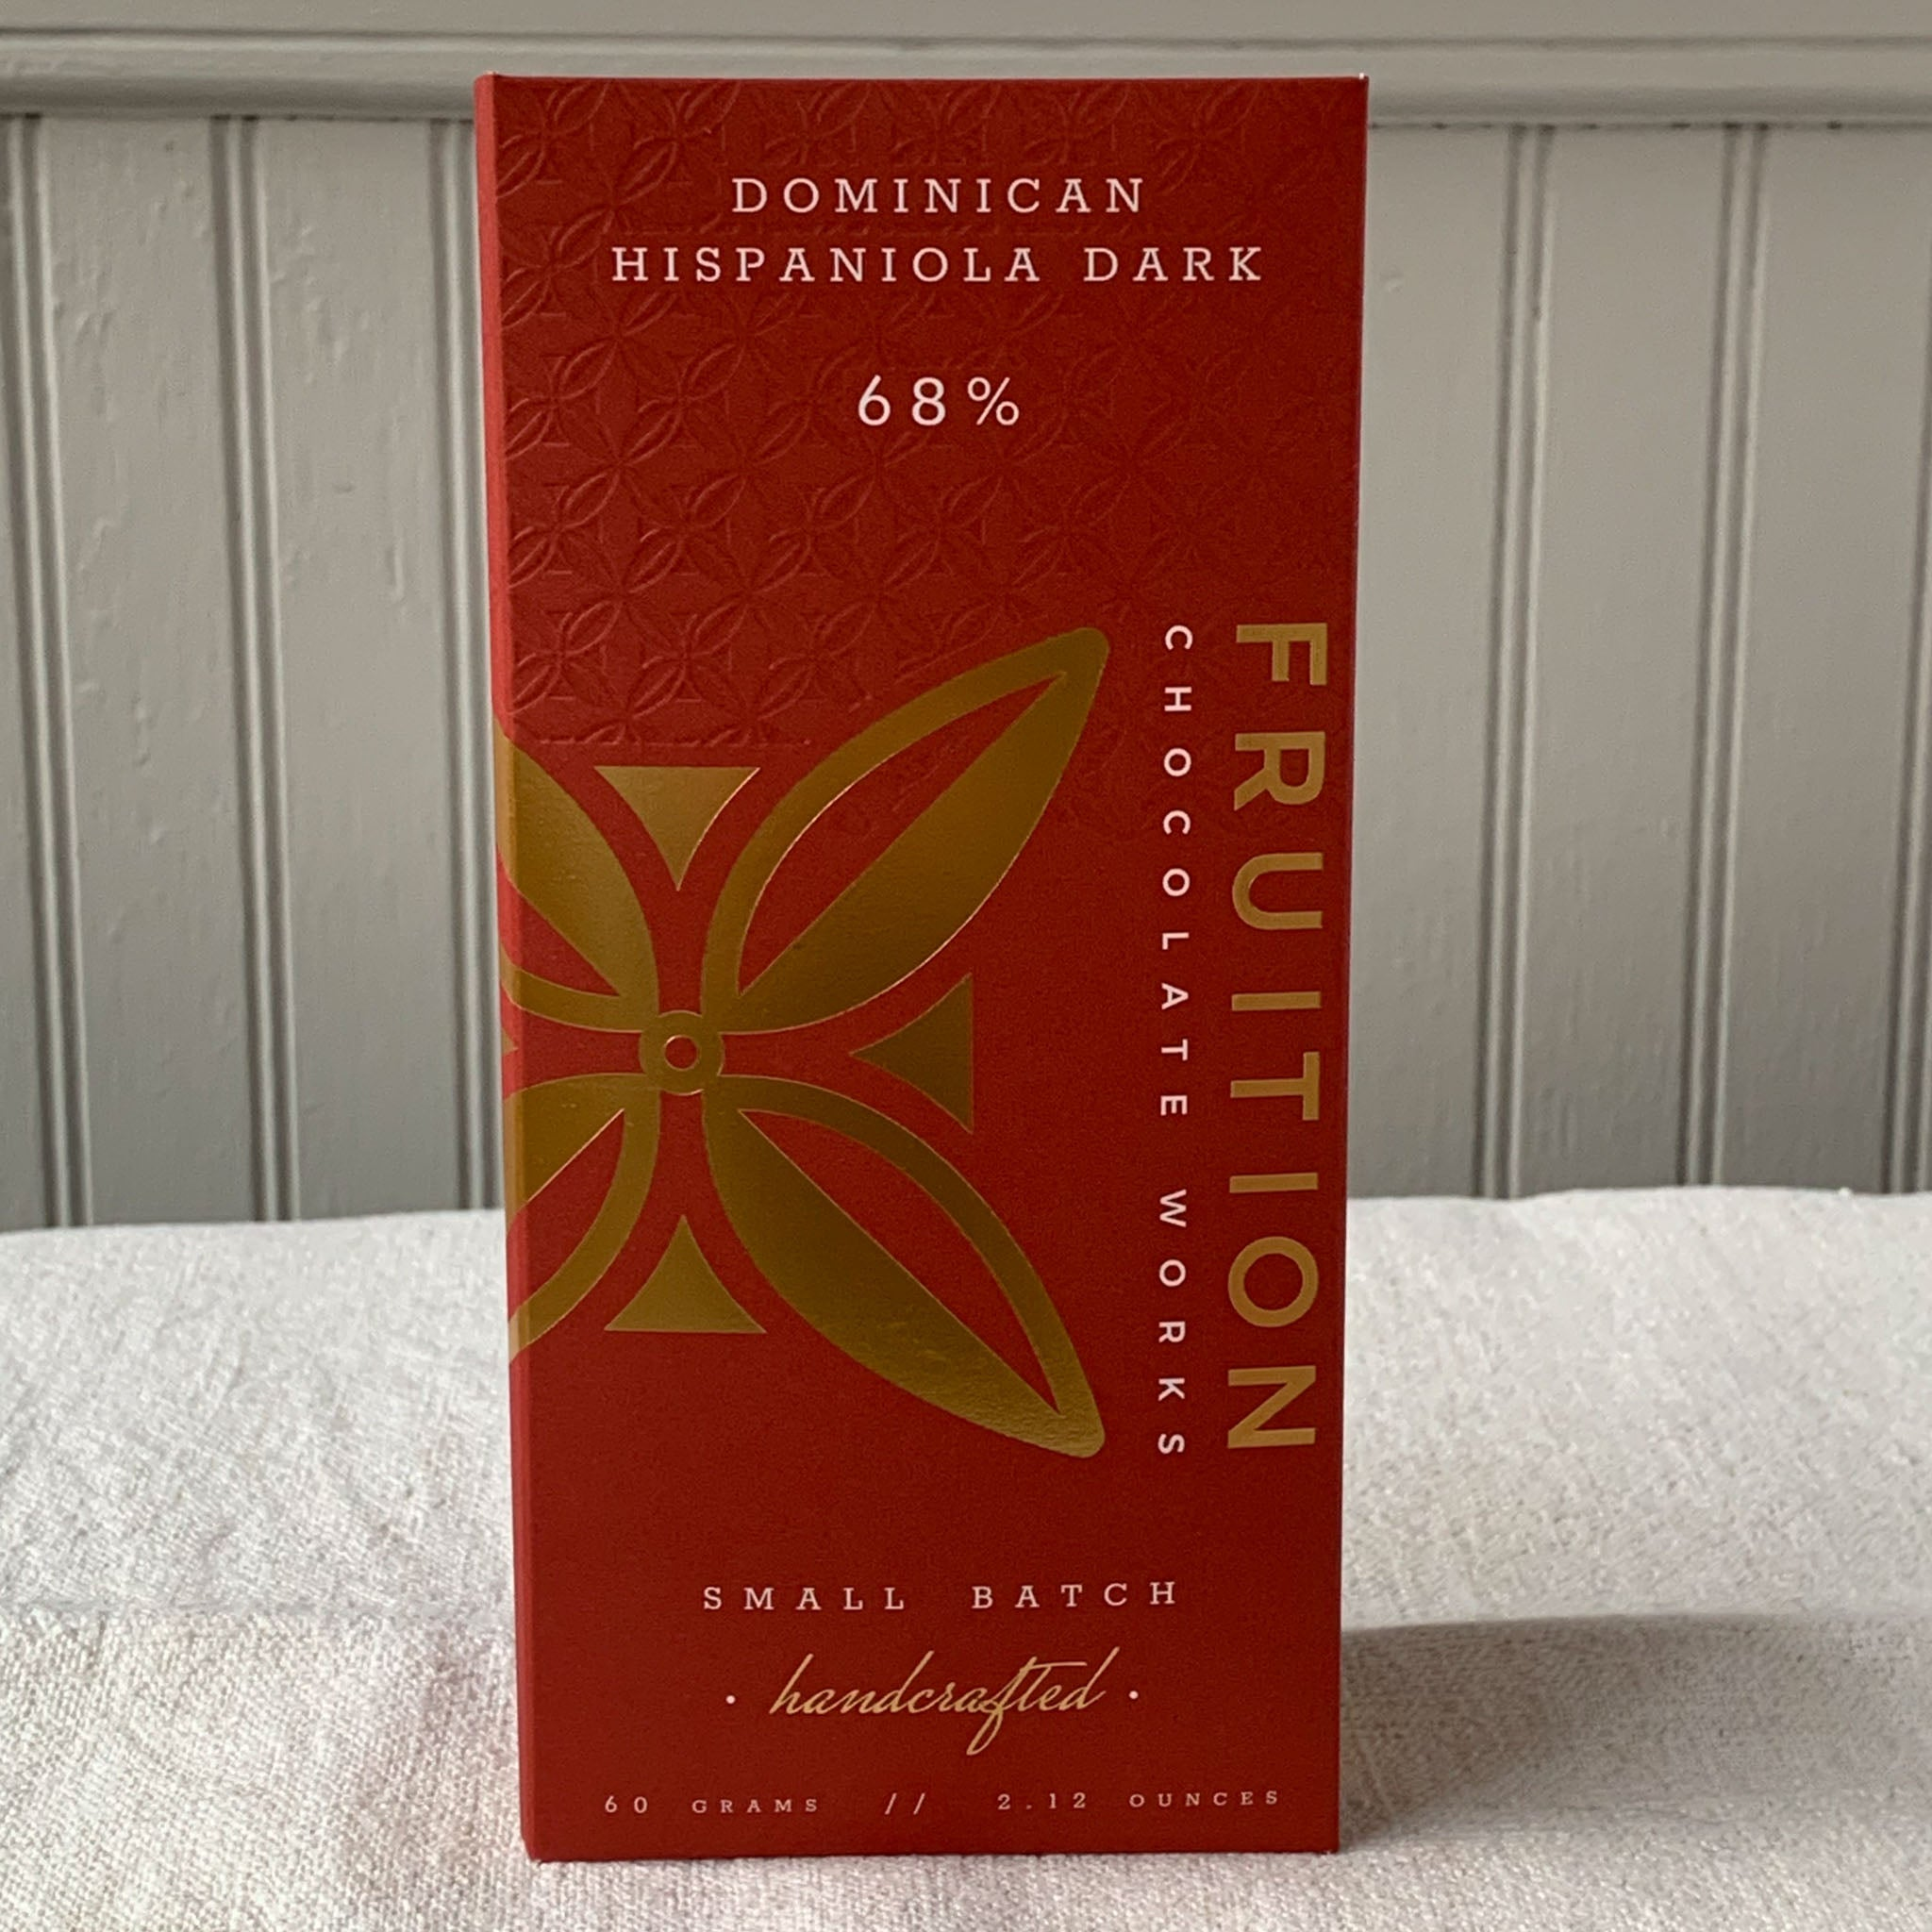 Dominican Hispaniola Dark 68% Fruition